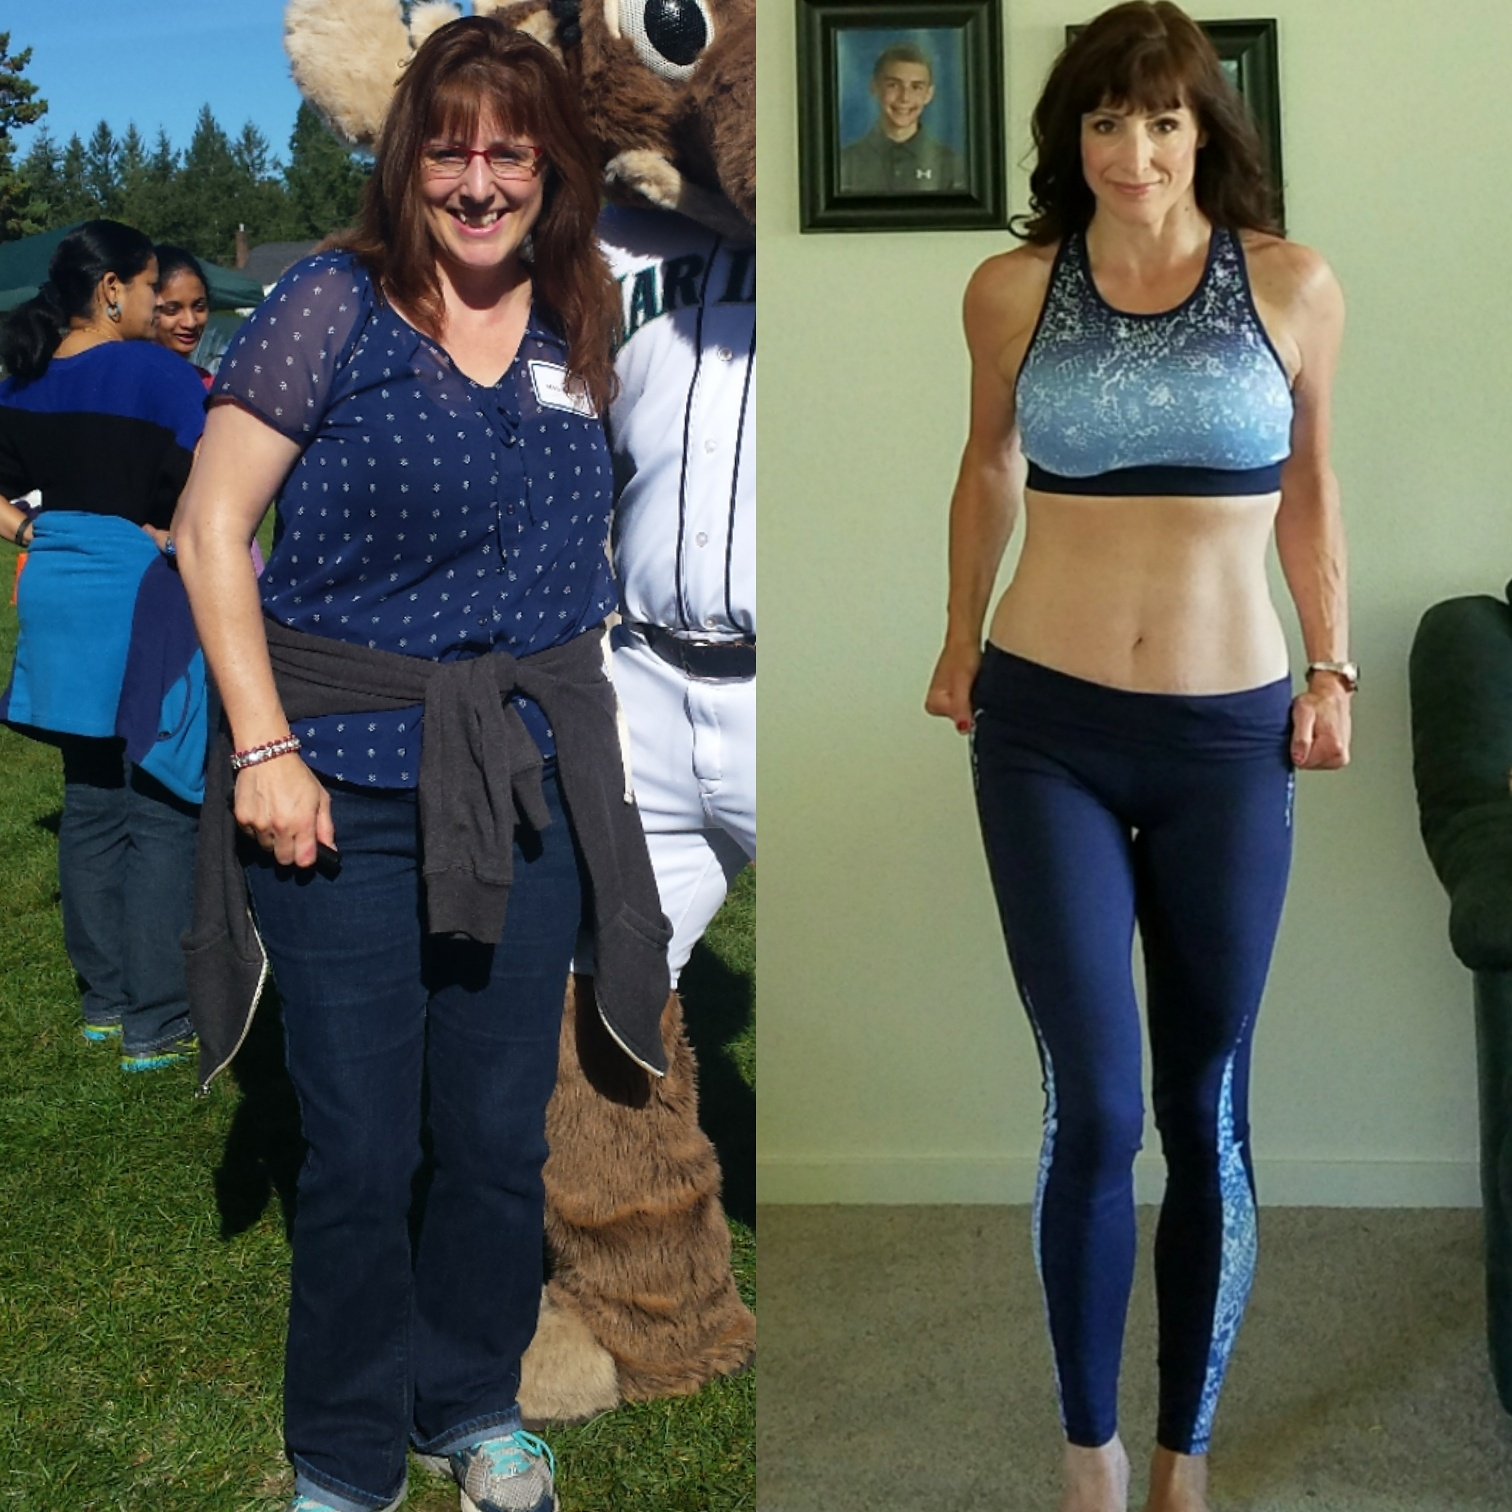 Christine lost 47 pounds! See my before and after weight loss pictures, and read amazing weight loss success stories from real women and their best weight loss diet plans and programs. Motivation to lose weight with walking and inspiration from before and after weightloss pics and photos.